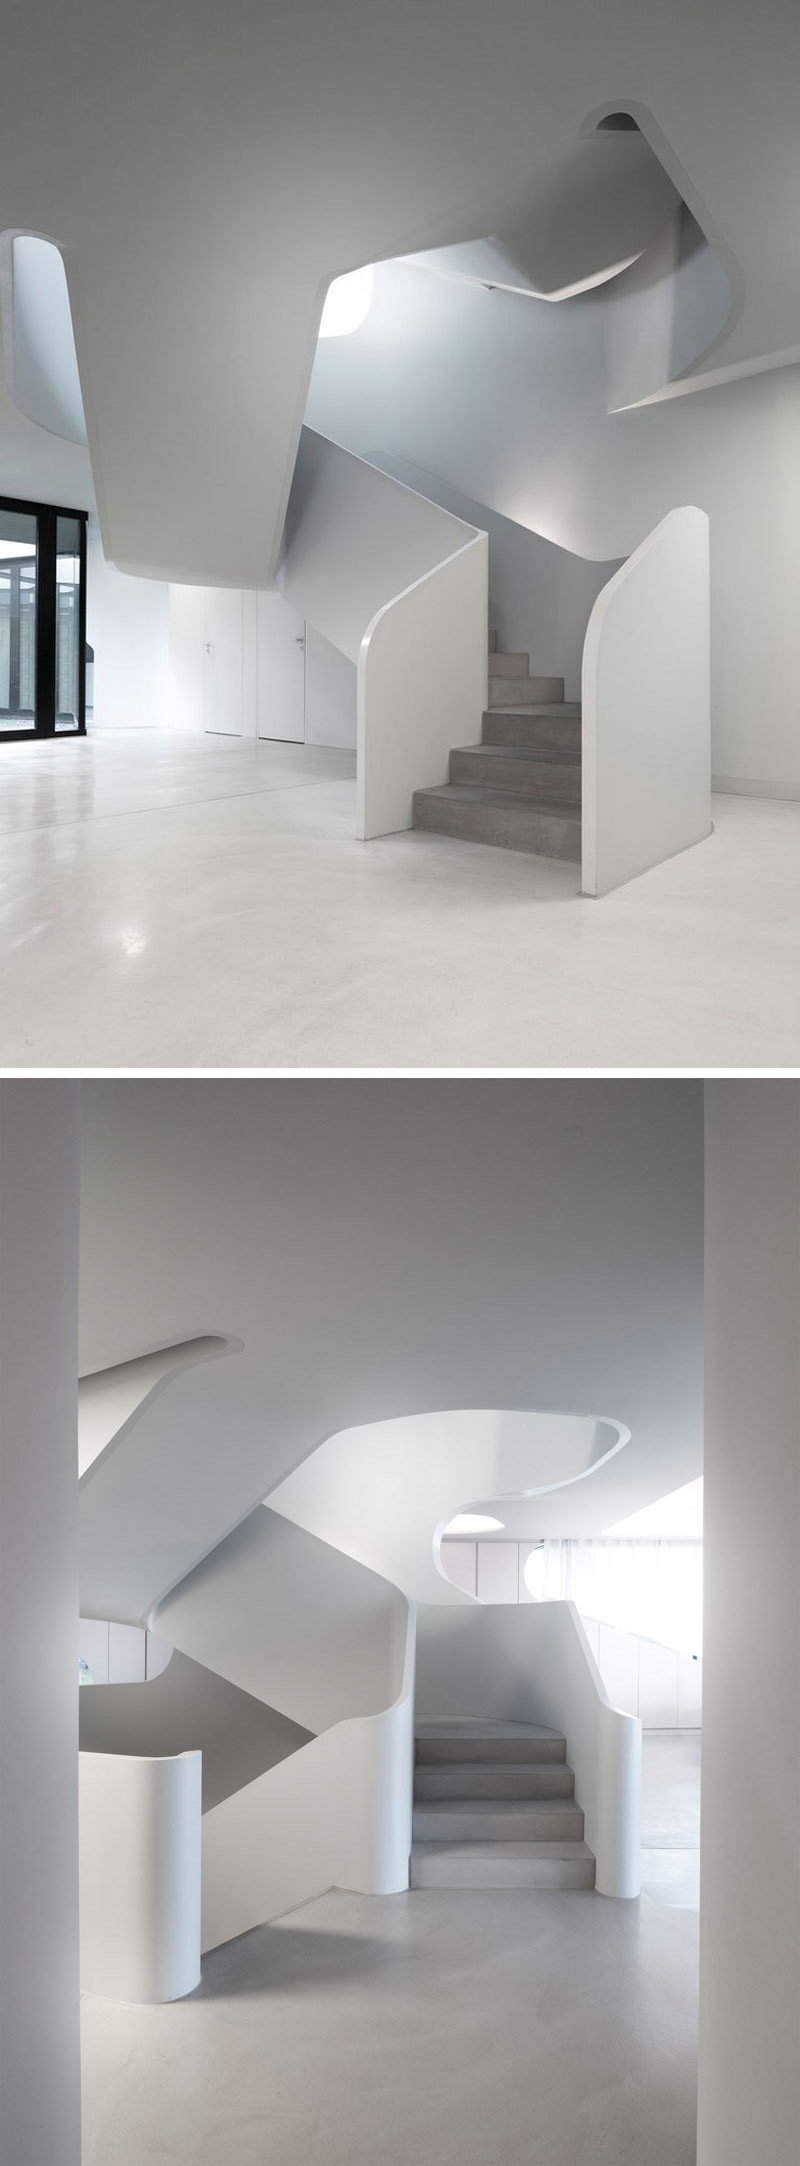 Entering into the home, a sculptural white set of stairs with smooth concrete steps leads you to the second floor of this modern house.